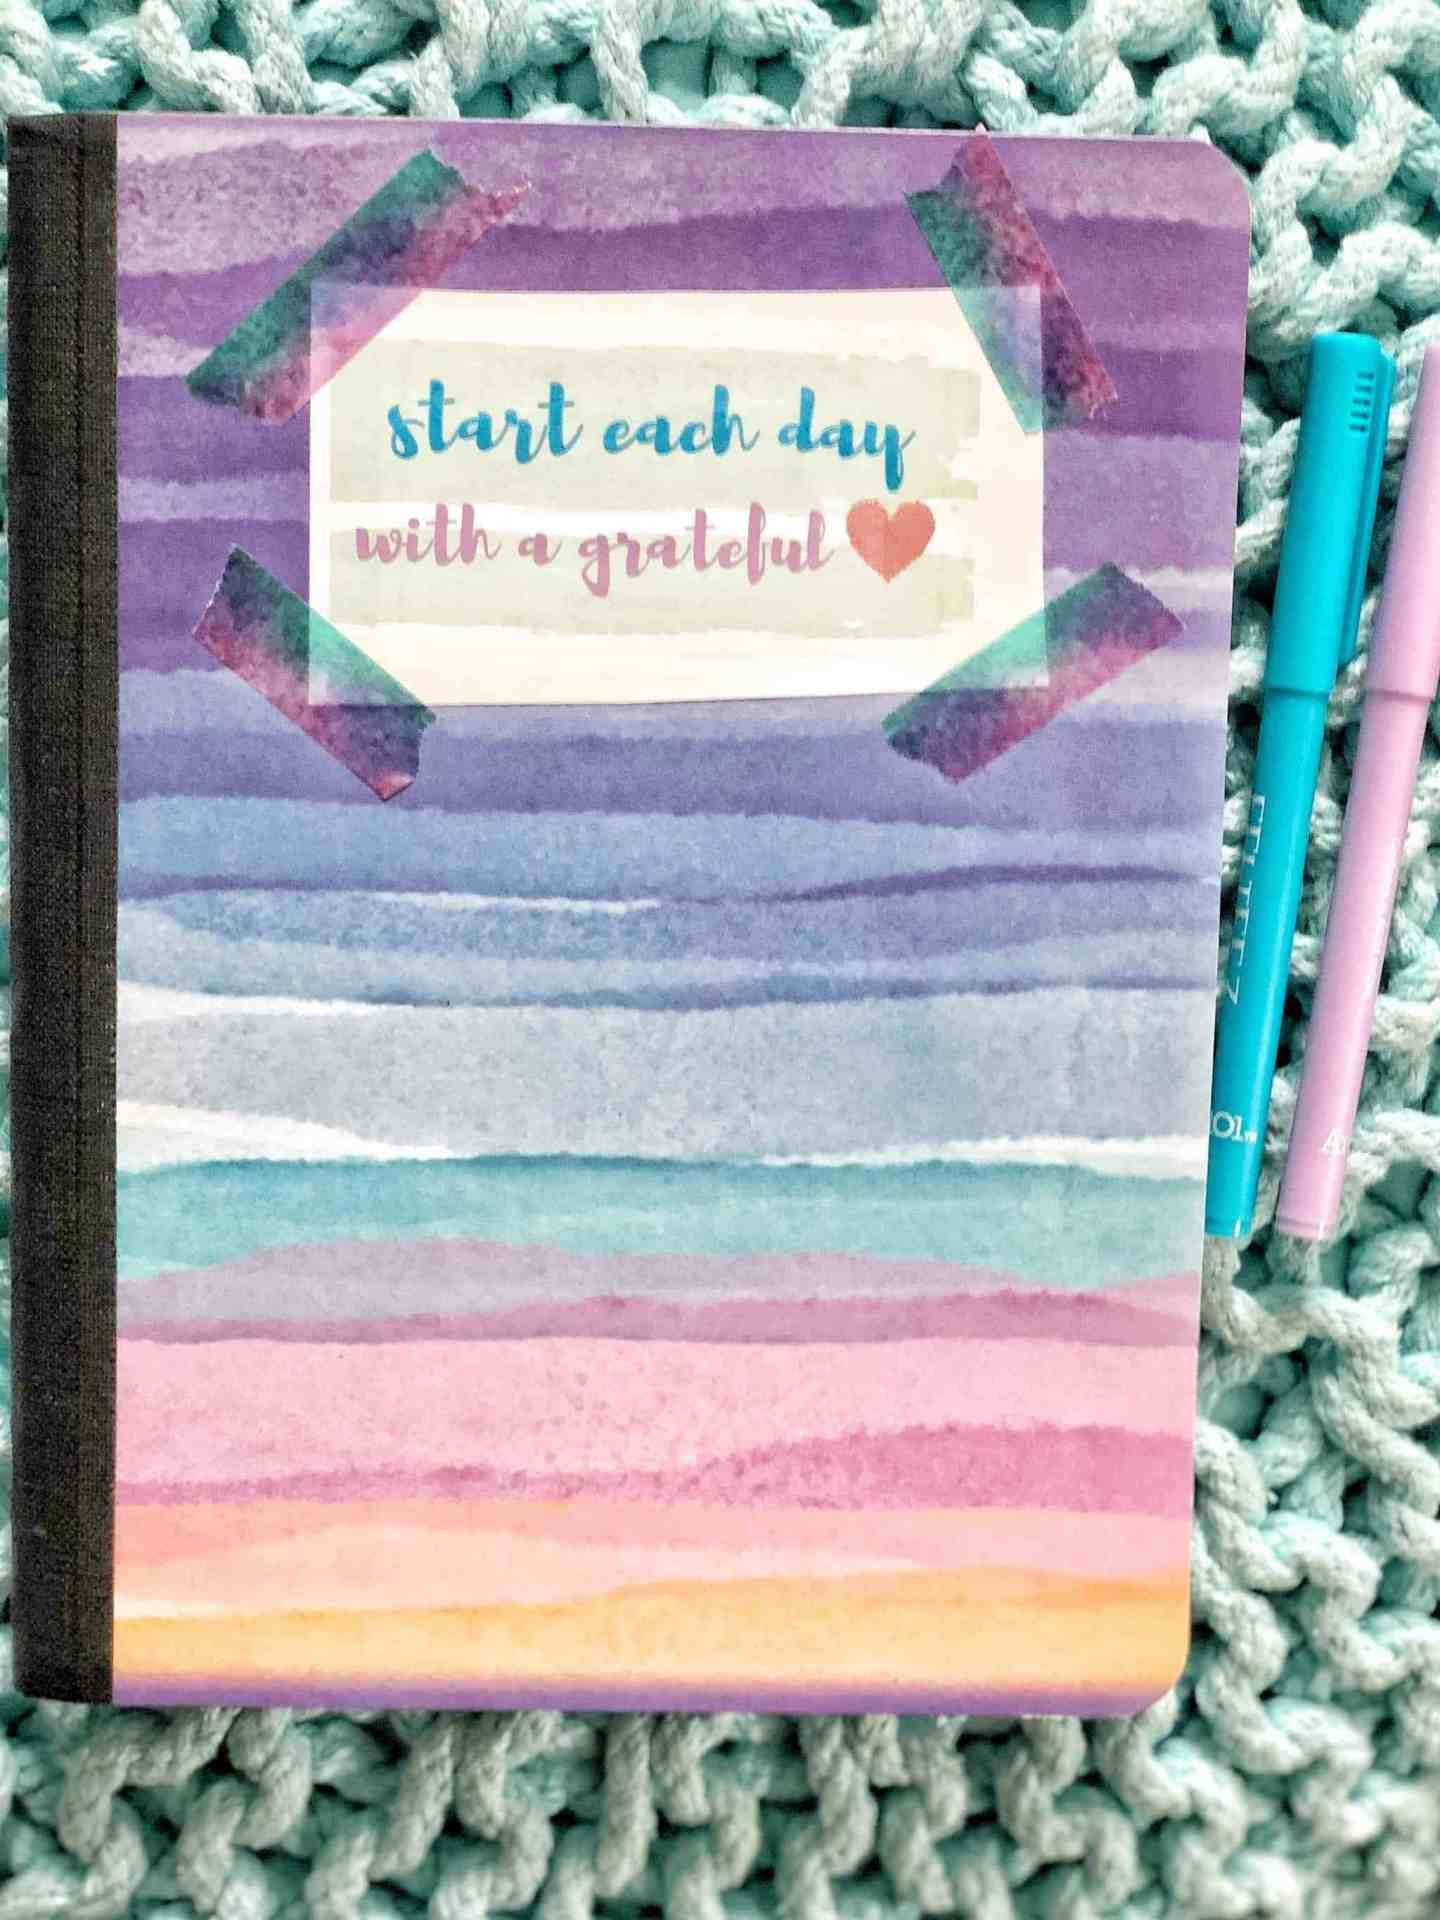 How To Start A Daily Gratitude Journal With Kids